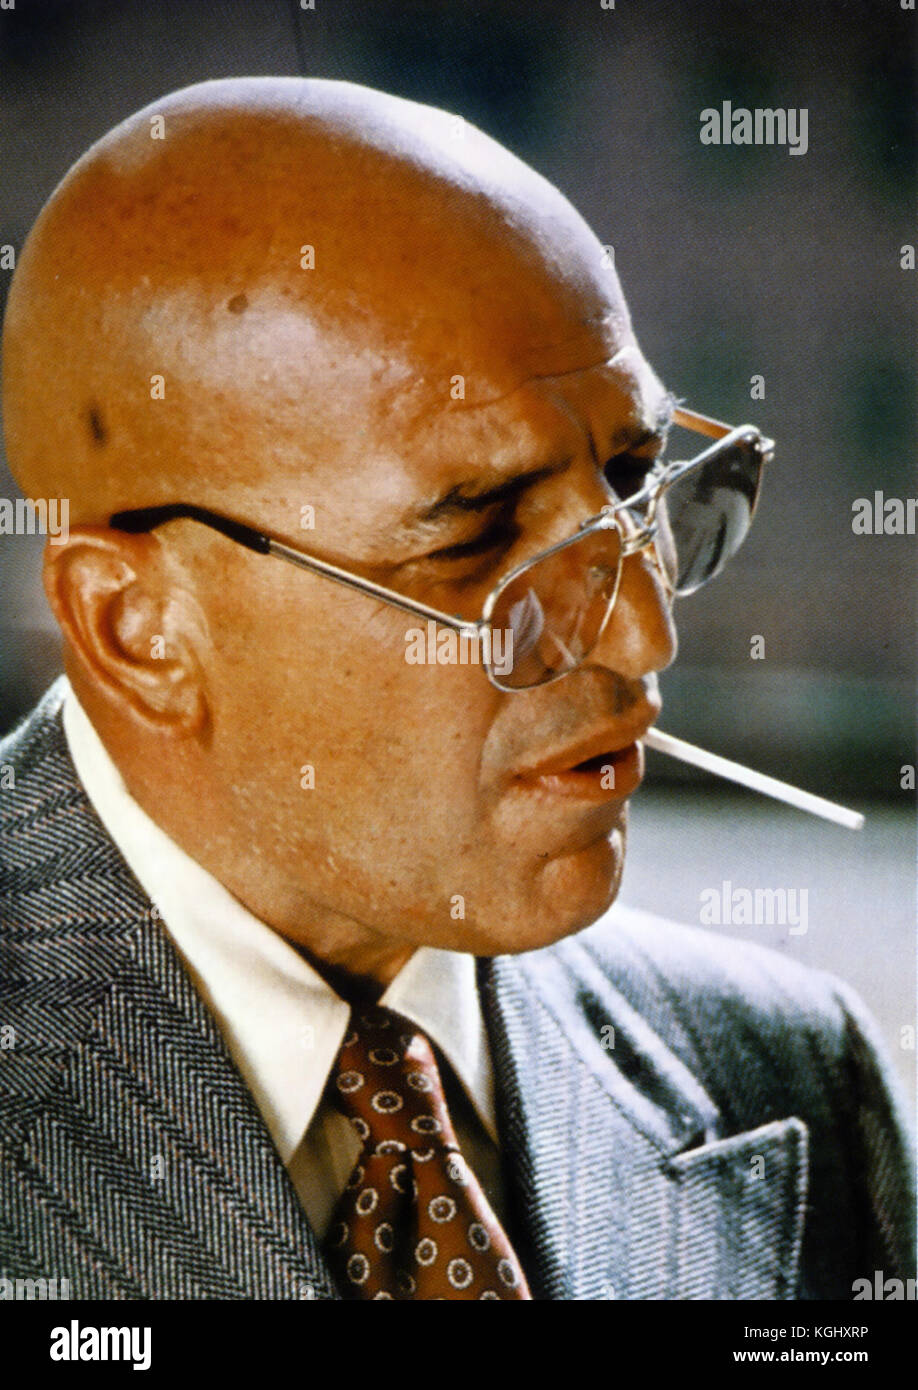 KOJAK CBS/NBC TV series 1973-1978 with Telly Savalas - Stock Image